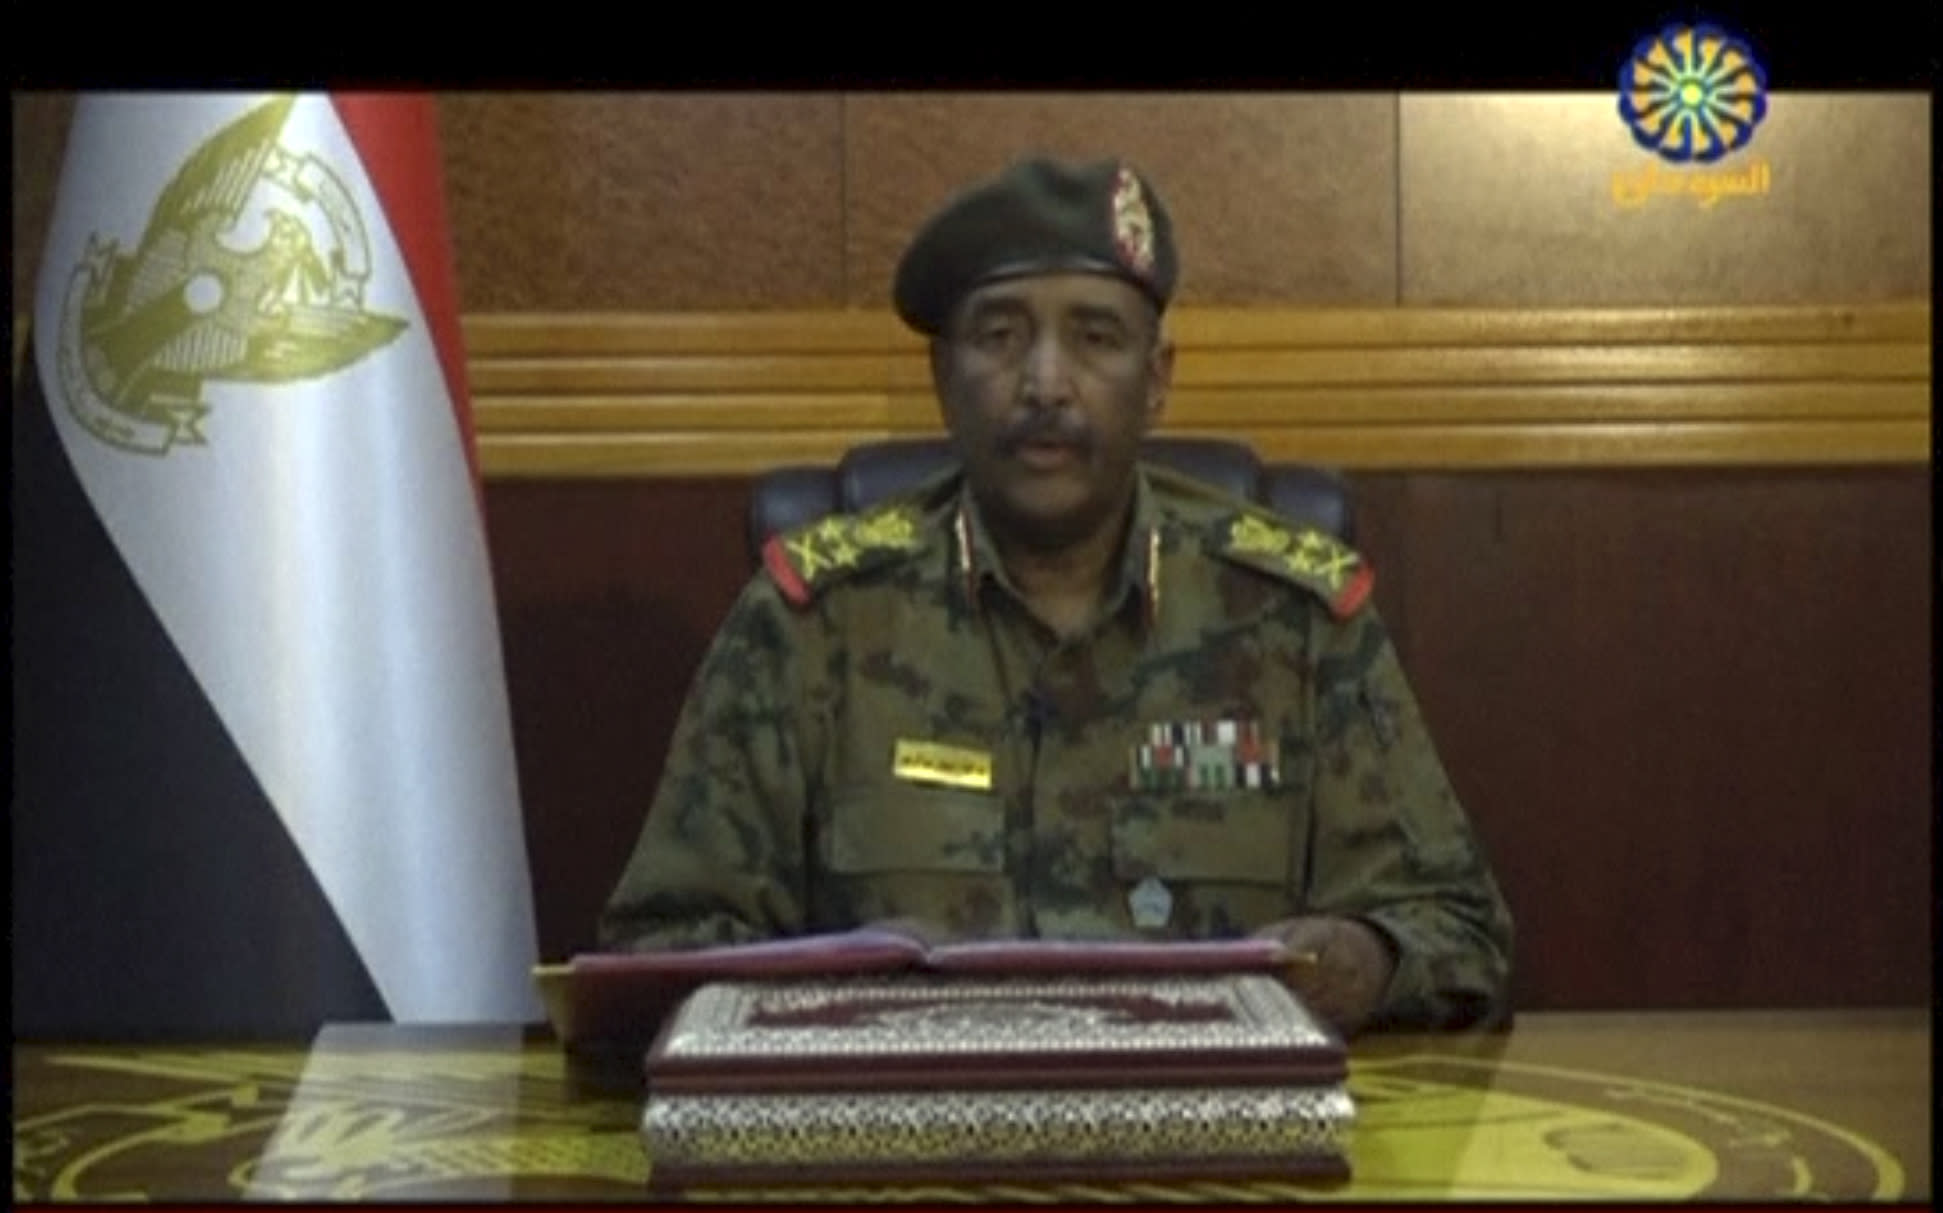 In this frame grab from video provided by Sudan TV, Lieutenant General Abdel-Fattah Burhan, head of the Sudanese Transitional Military Council, TMC, makes a broadcast announcement in Khartoum, Sudan, Tuesday, June 4, 2029. The TMC on Tuesday said that they want to stage early elections in the country and that all agreements with protest leaders have been cancelled. The statement came a day after a pro-democracy sit-in outside the army command base in the capital Khartoum was violently overrun by the ruling army. Protest organizers said 35 people died in the carnage Monday. (Sudan TV via AP)